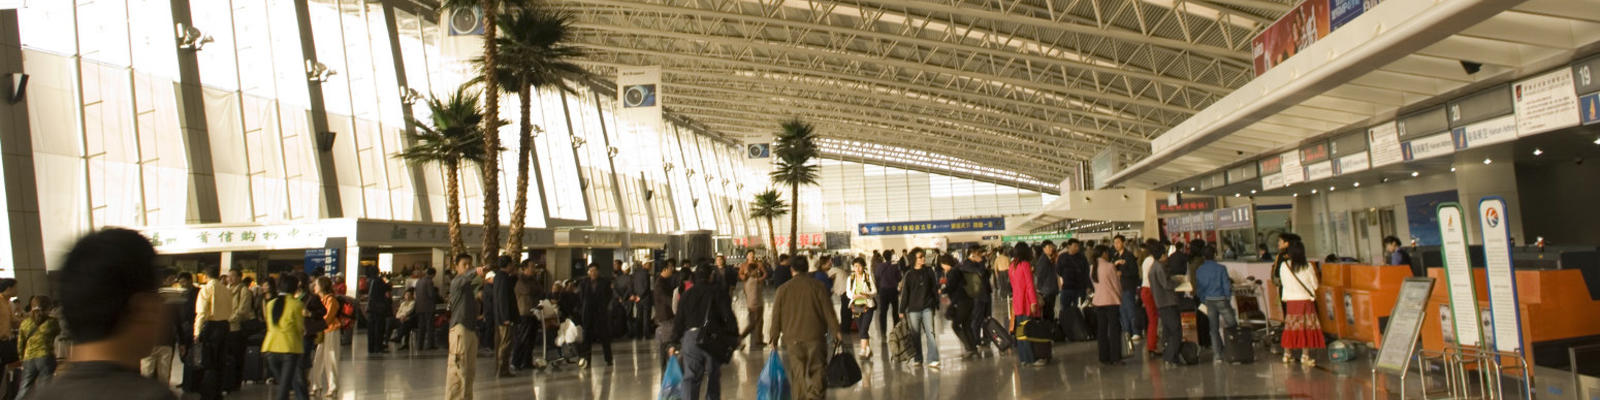 A busy airport terminal